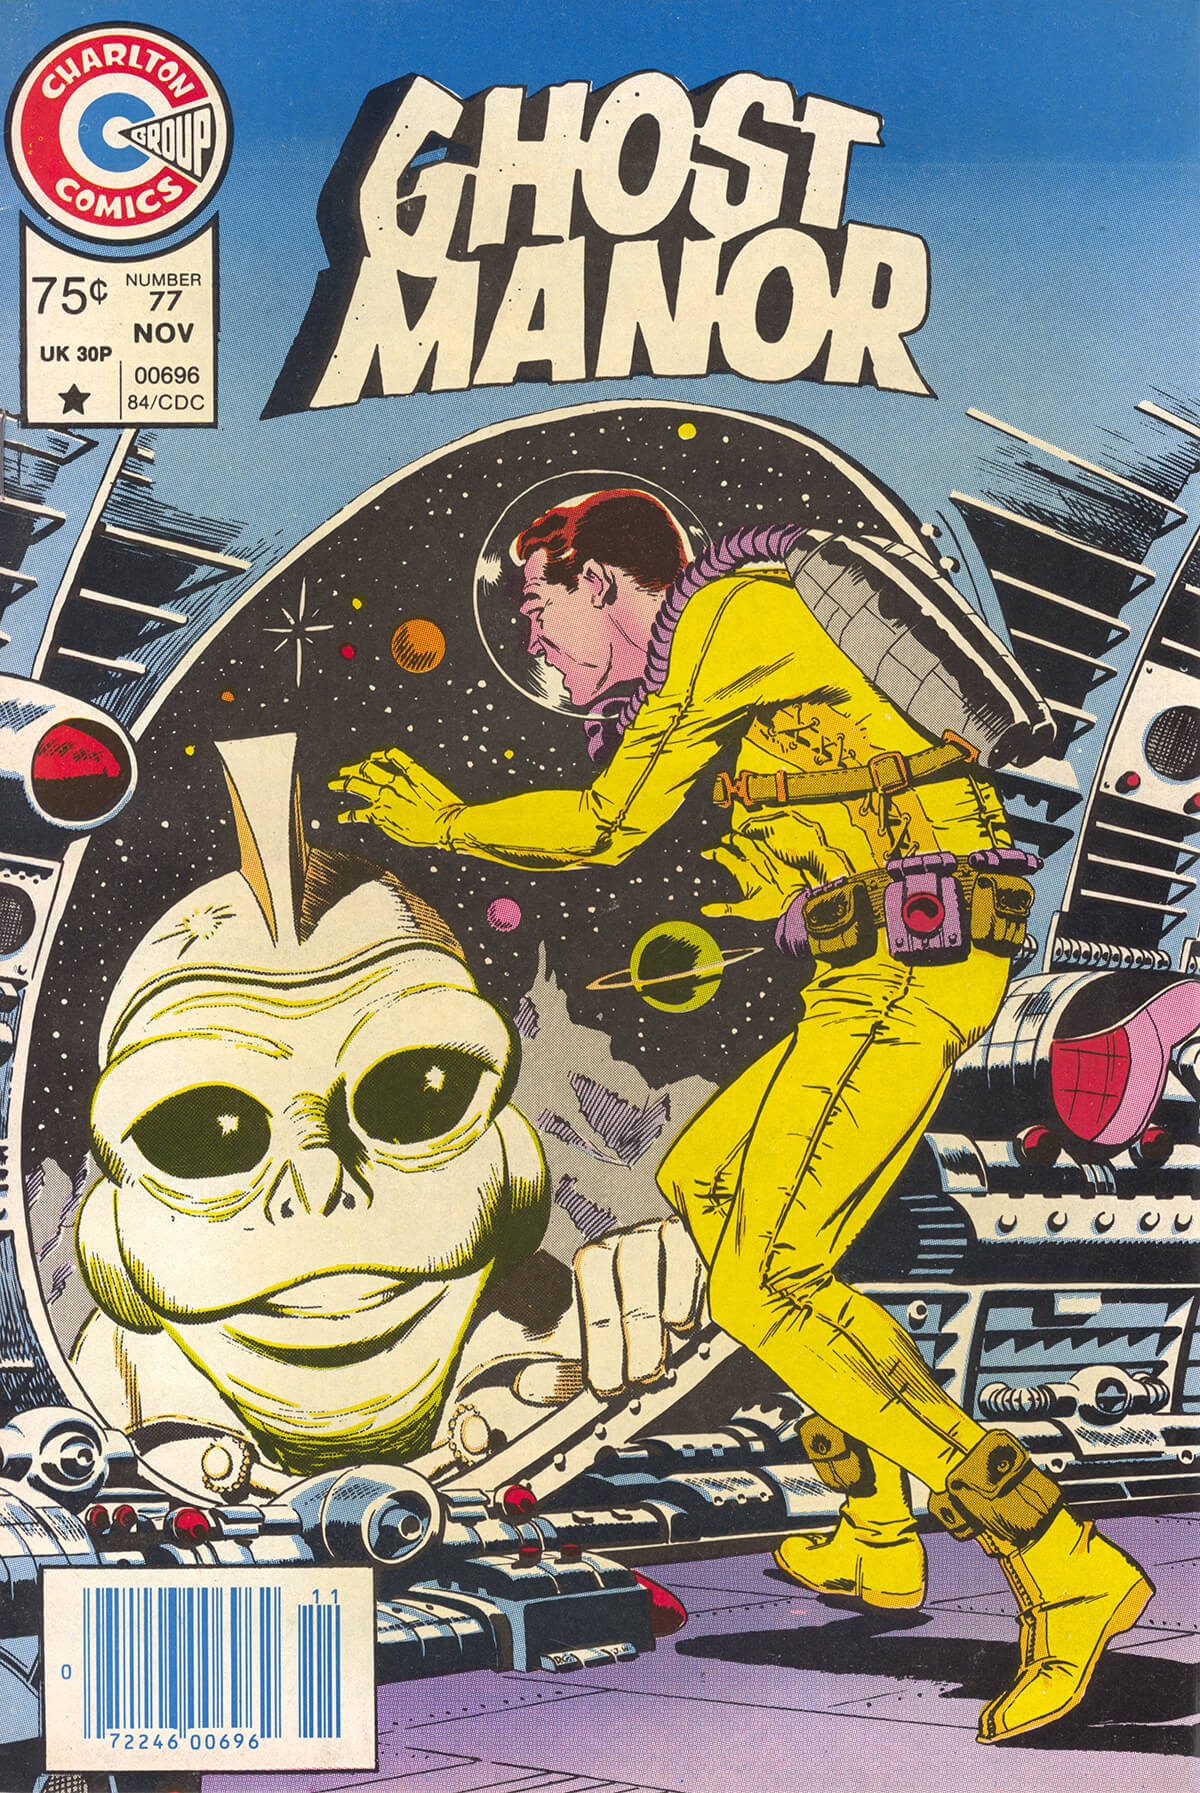 Charlton Comics Ghost Manor 77